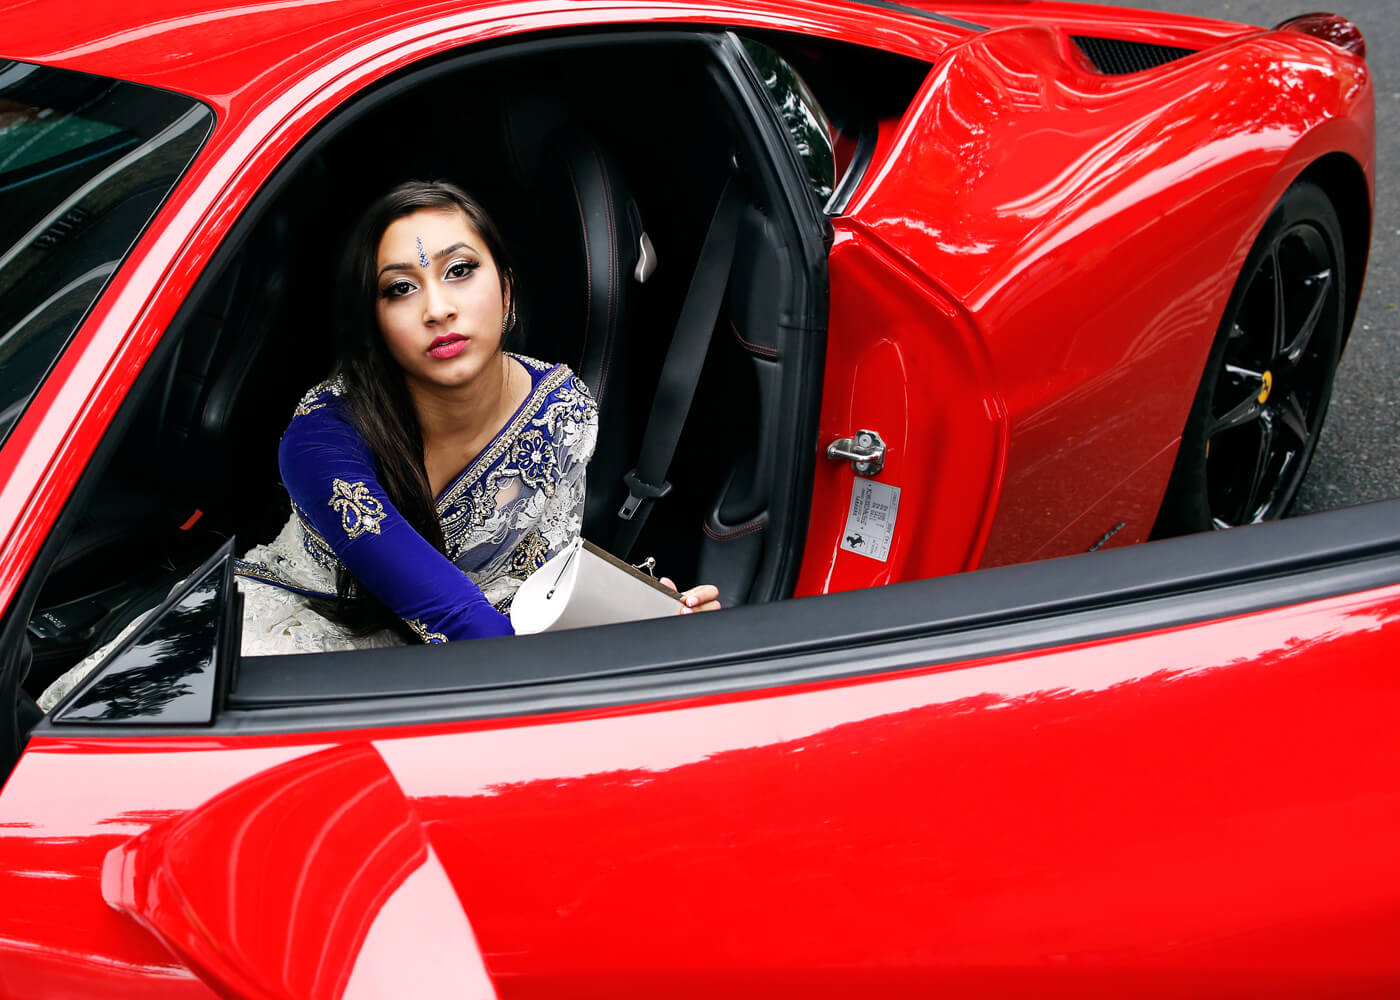 Halimah arrives for the supercar parade.